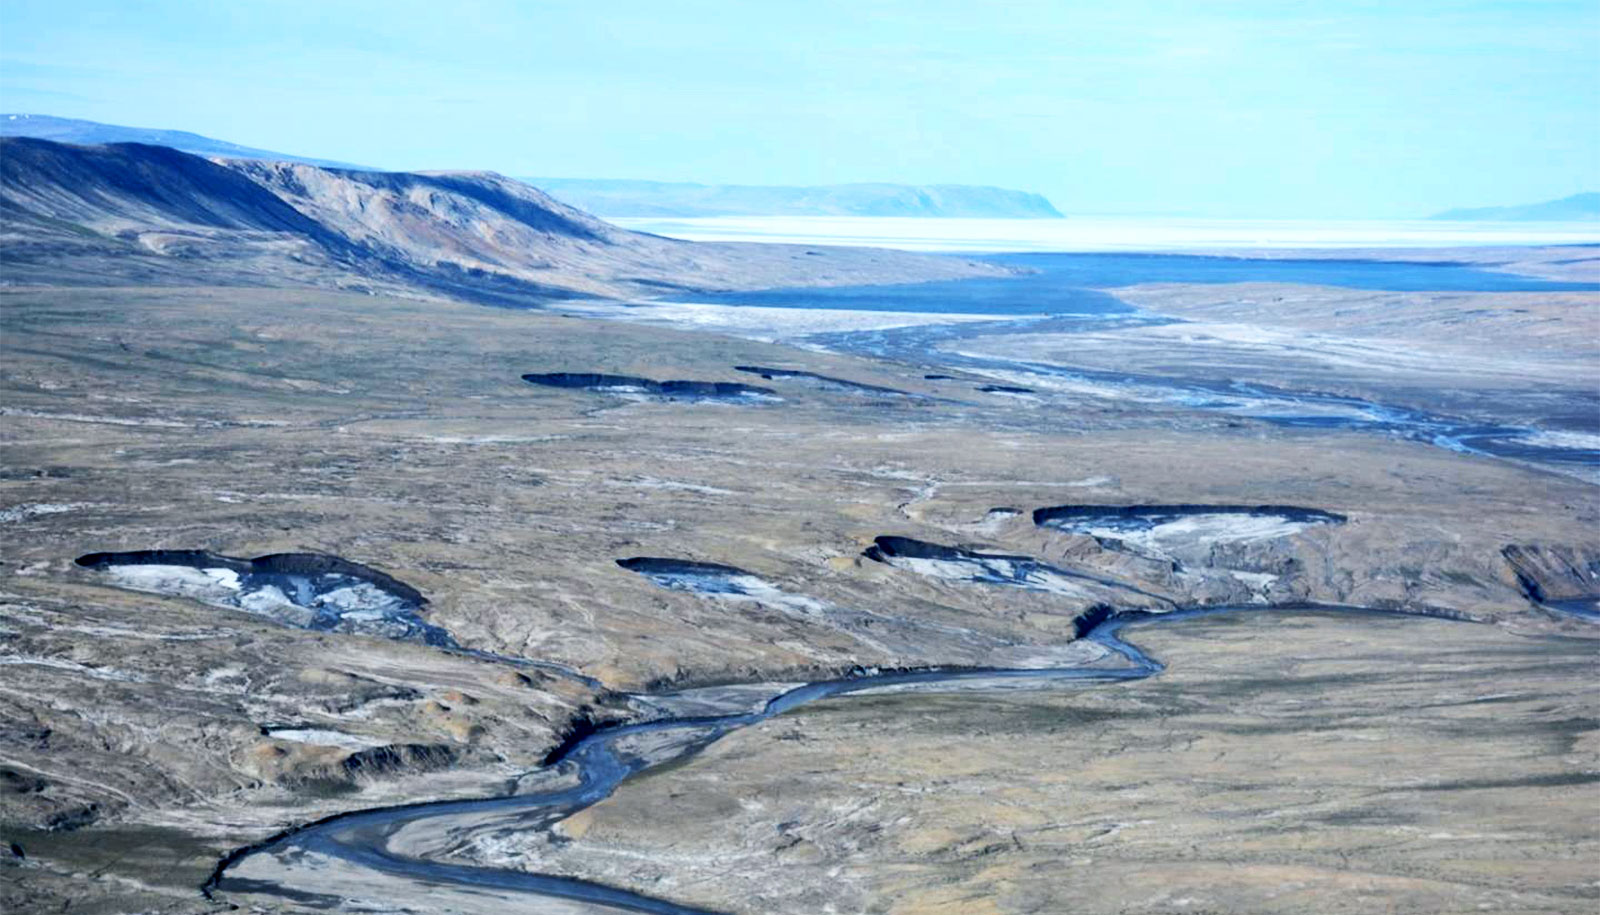 Permafrost melt is transforming the Arctic landscape